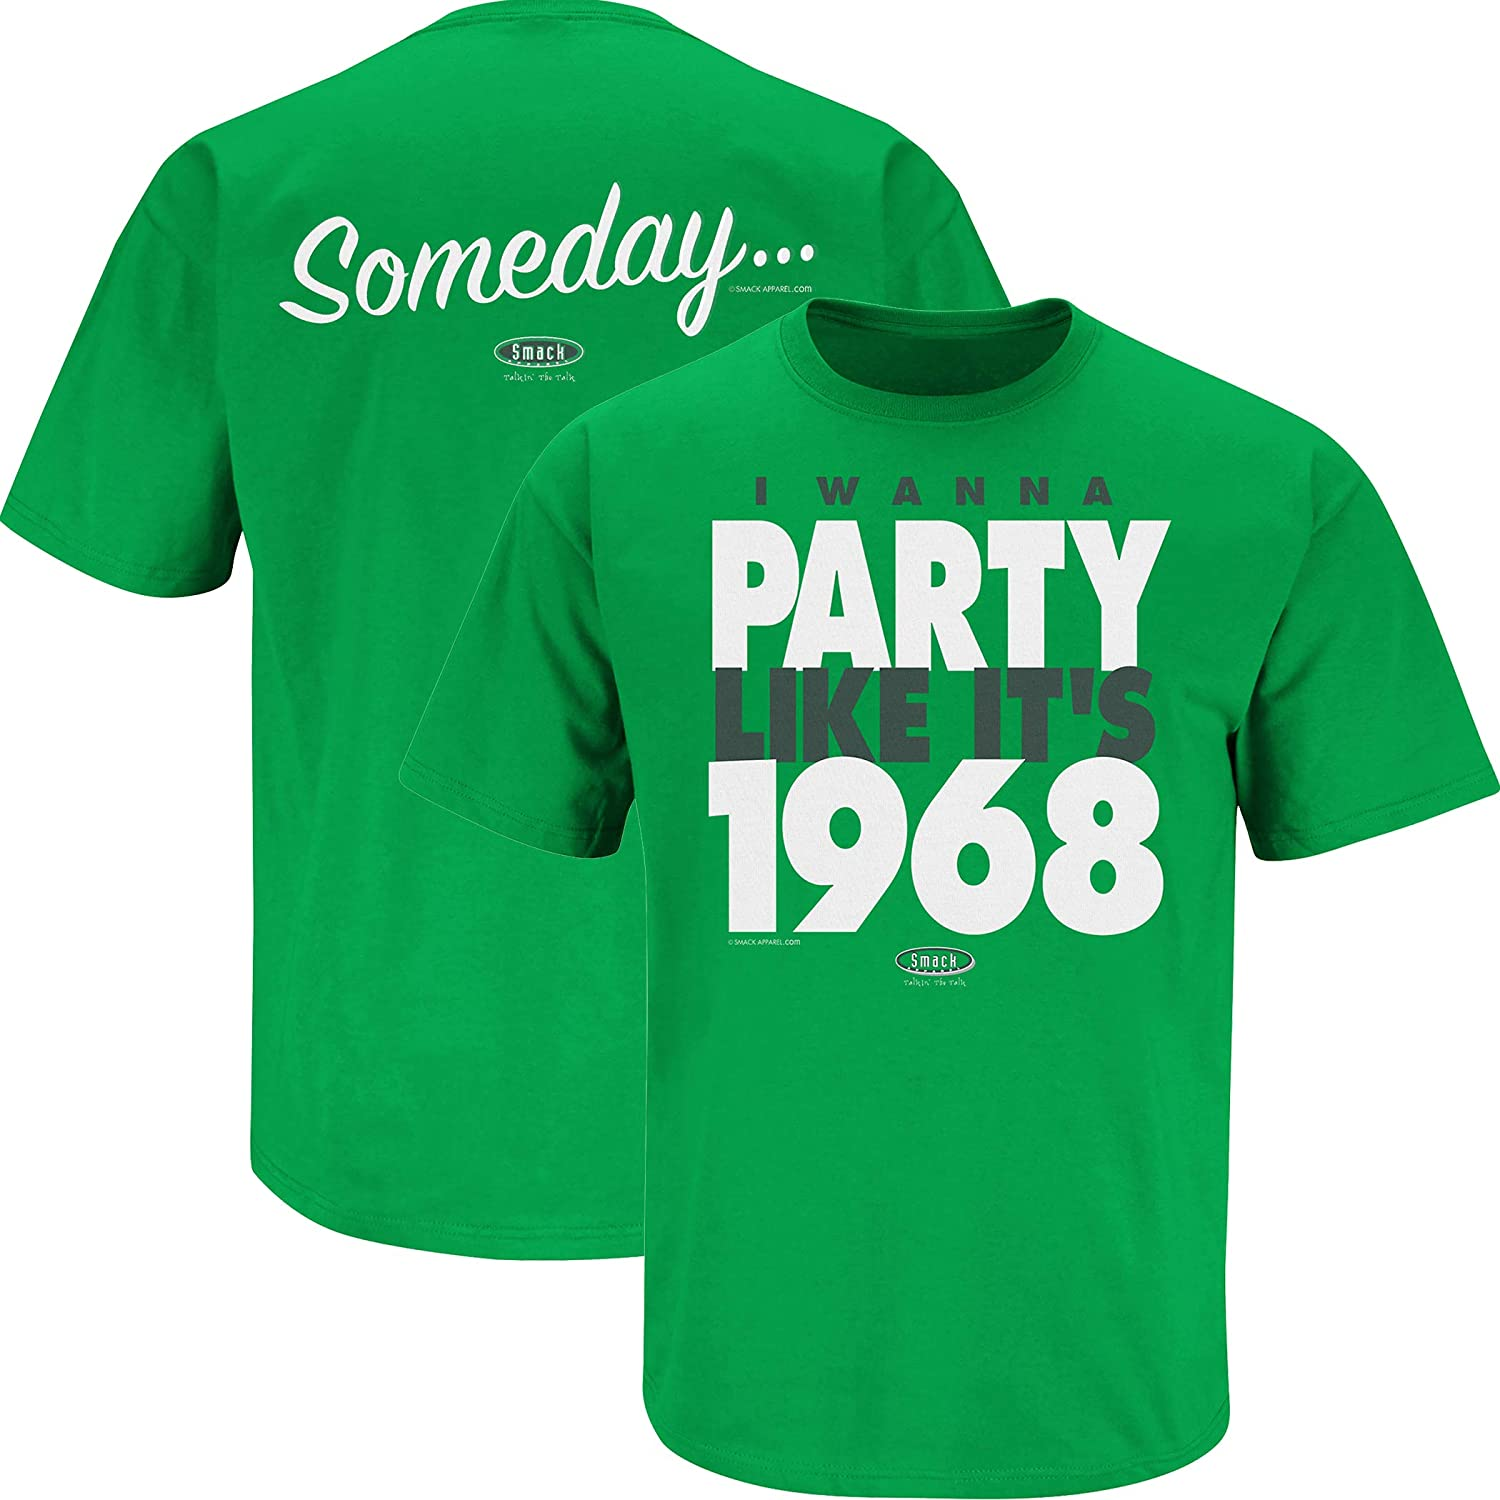 Someday/… I Wanna Party Like Its 1968 Green T-Shirt Sm-5X Smack Apparel New York Football Fans